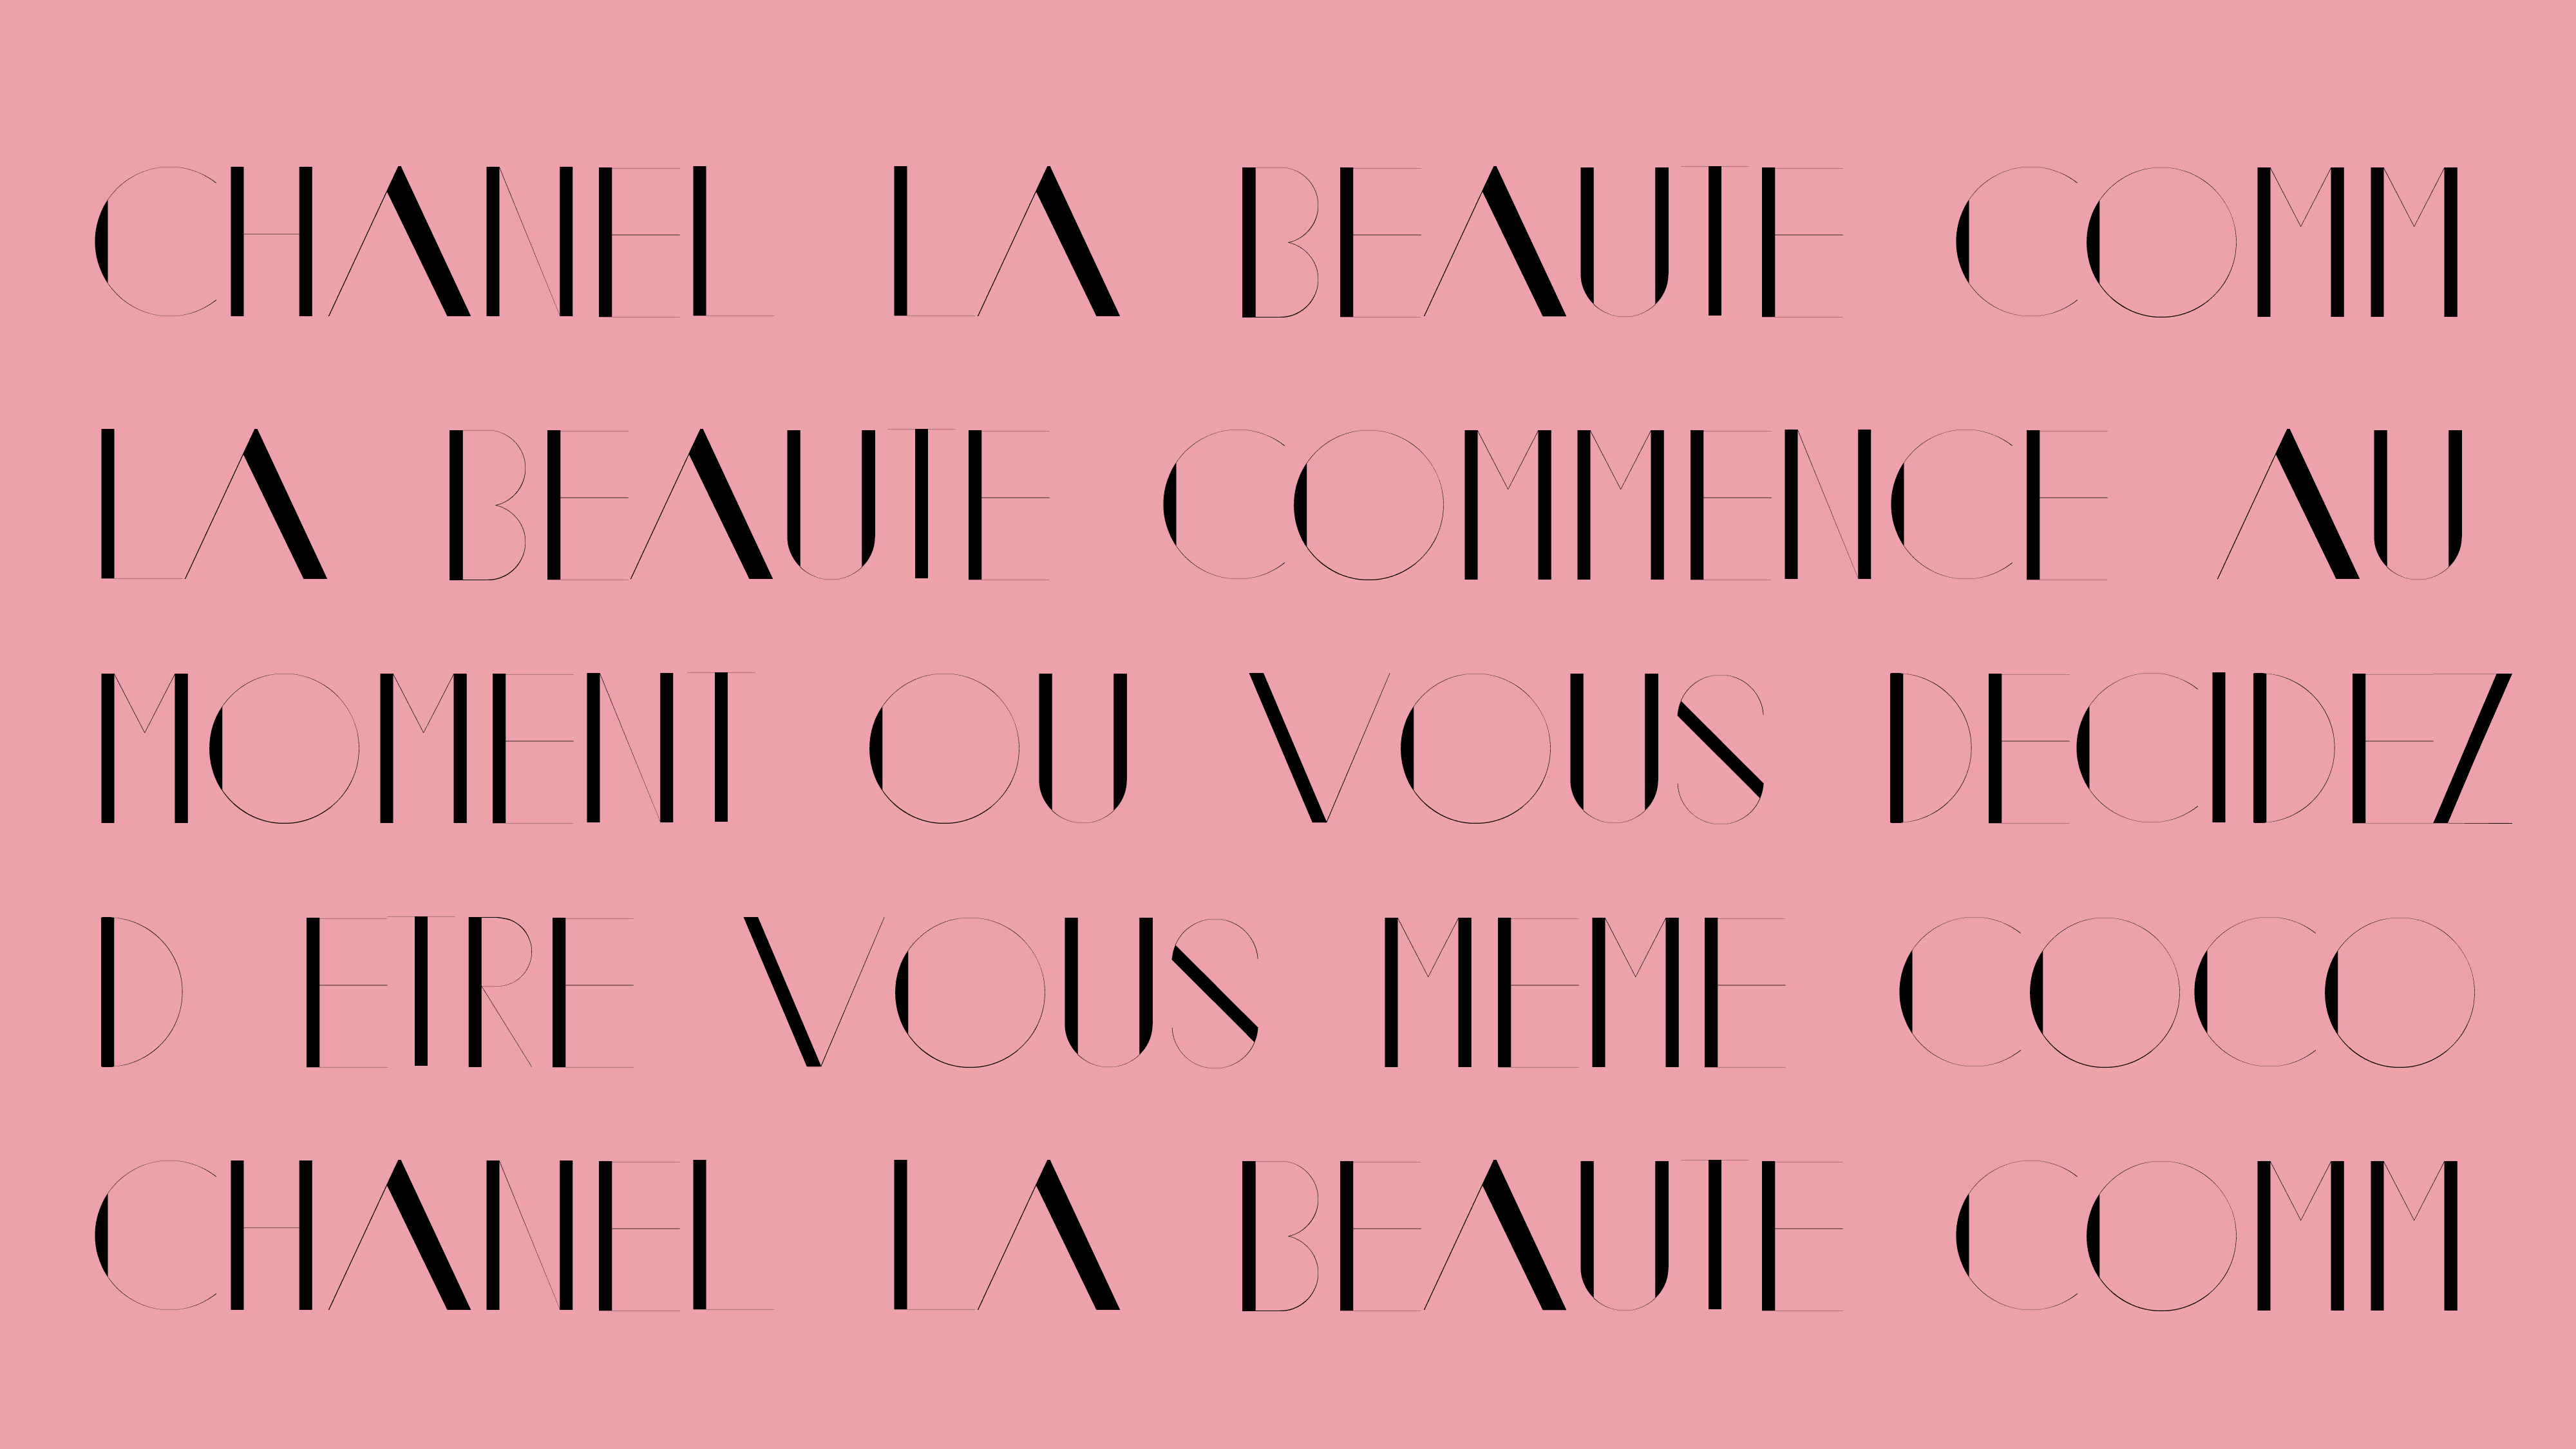 50 free stylish fonts to bring a touch of elegance to any design